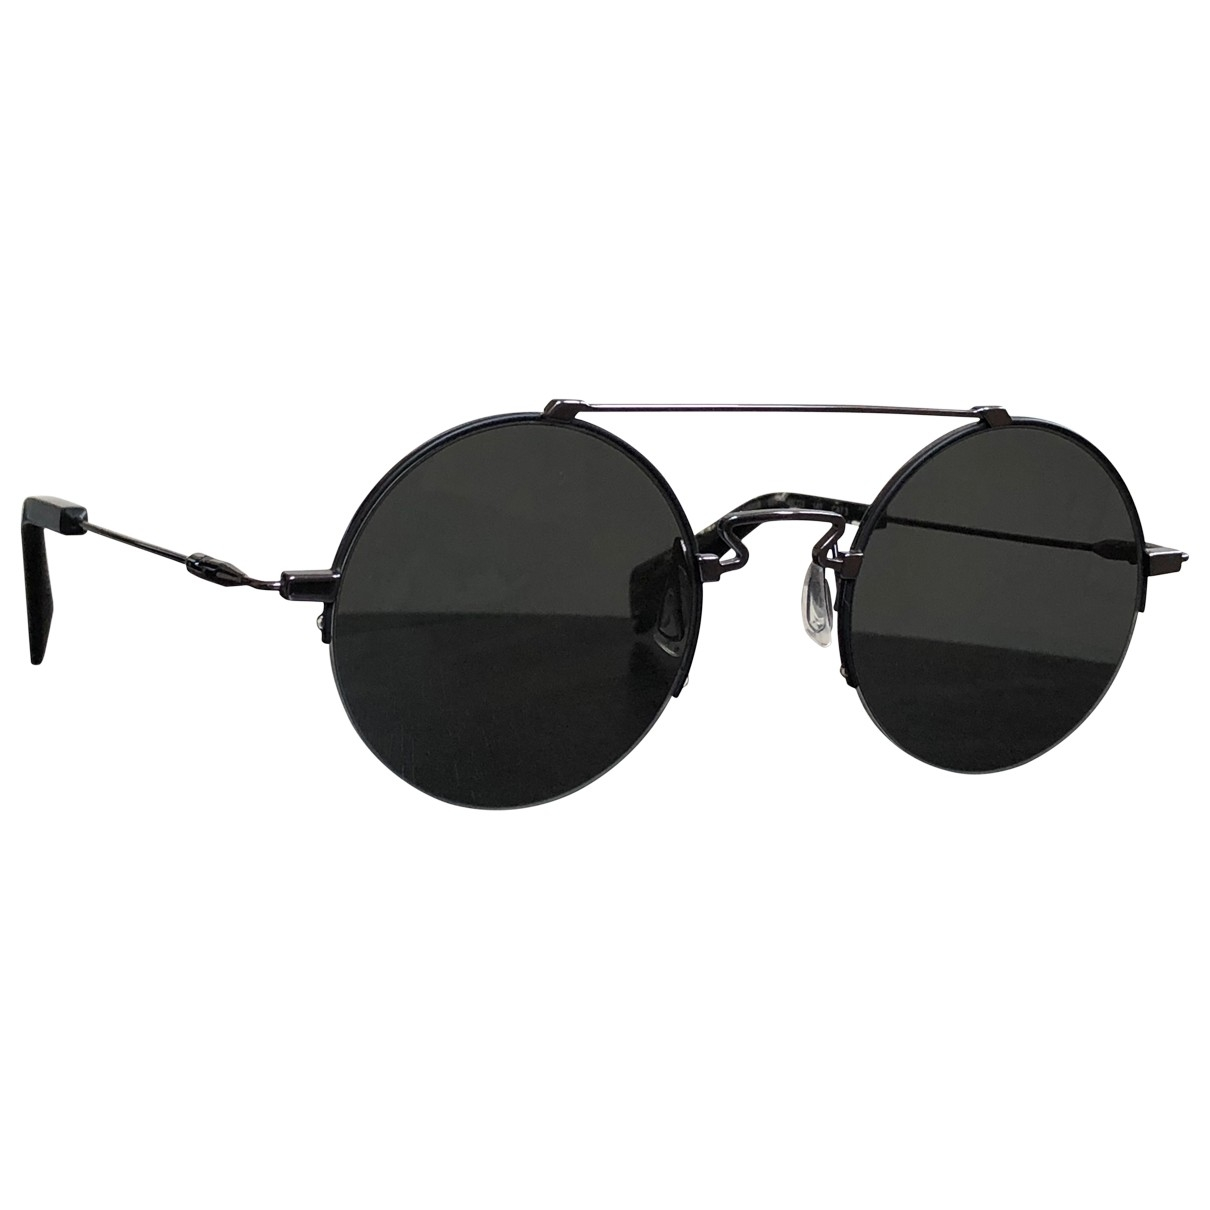 Yohji Yamamoto \N Black Metal Sunglasses for Women \N